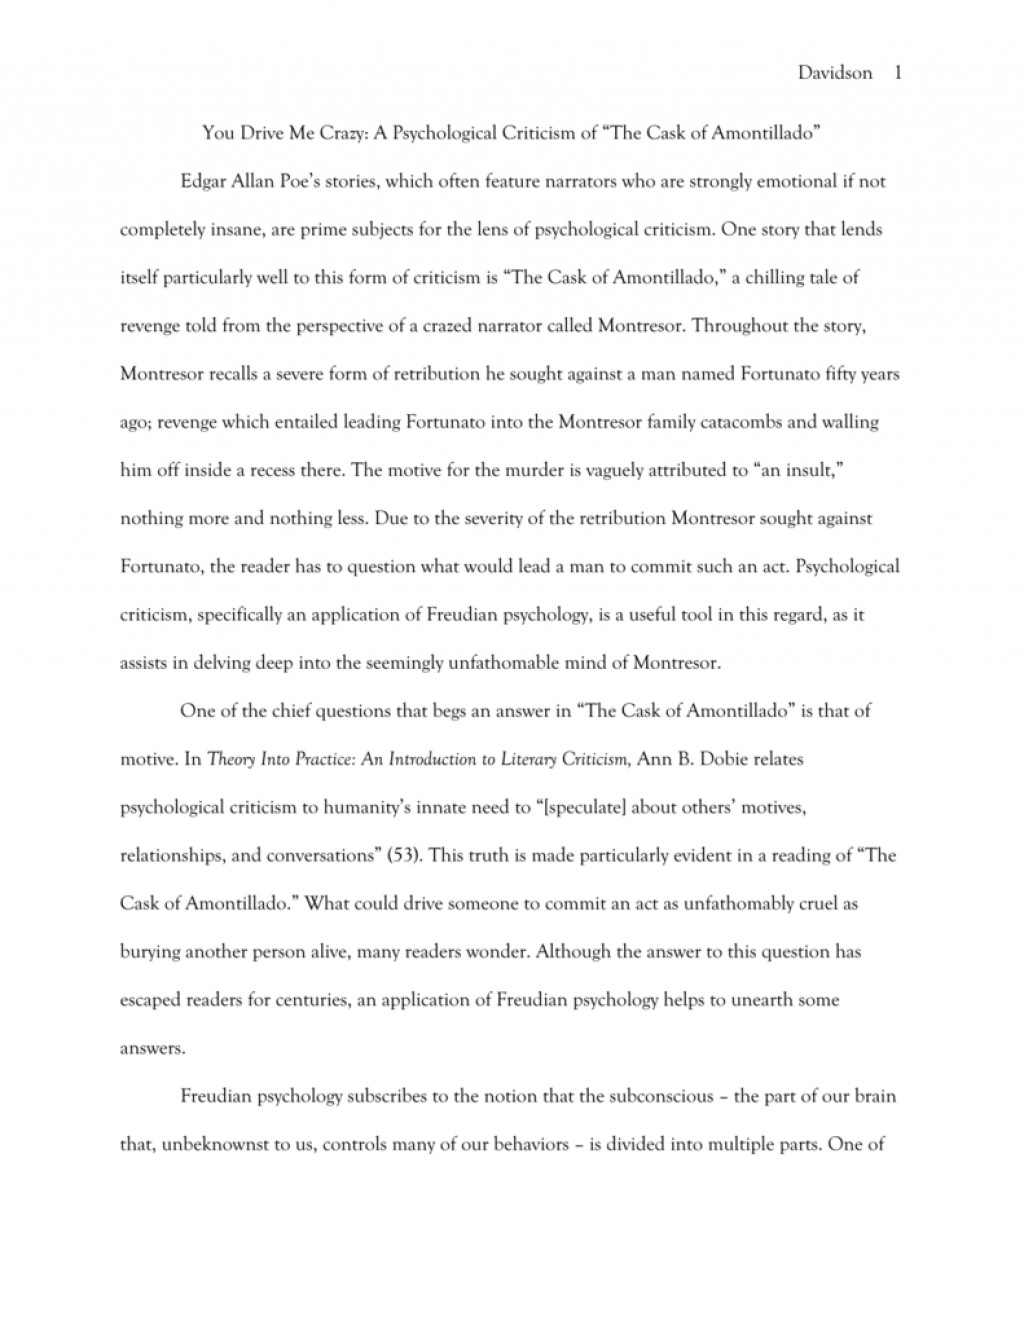 007 008304087 1 Essay Example The Cask Of Unforgettable Amontillado Outline Prompts Topics Large